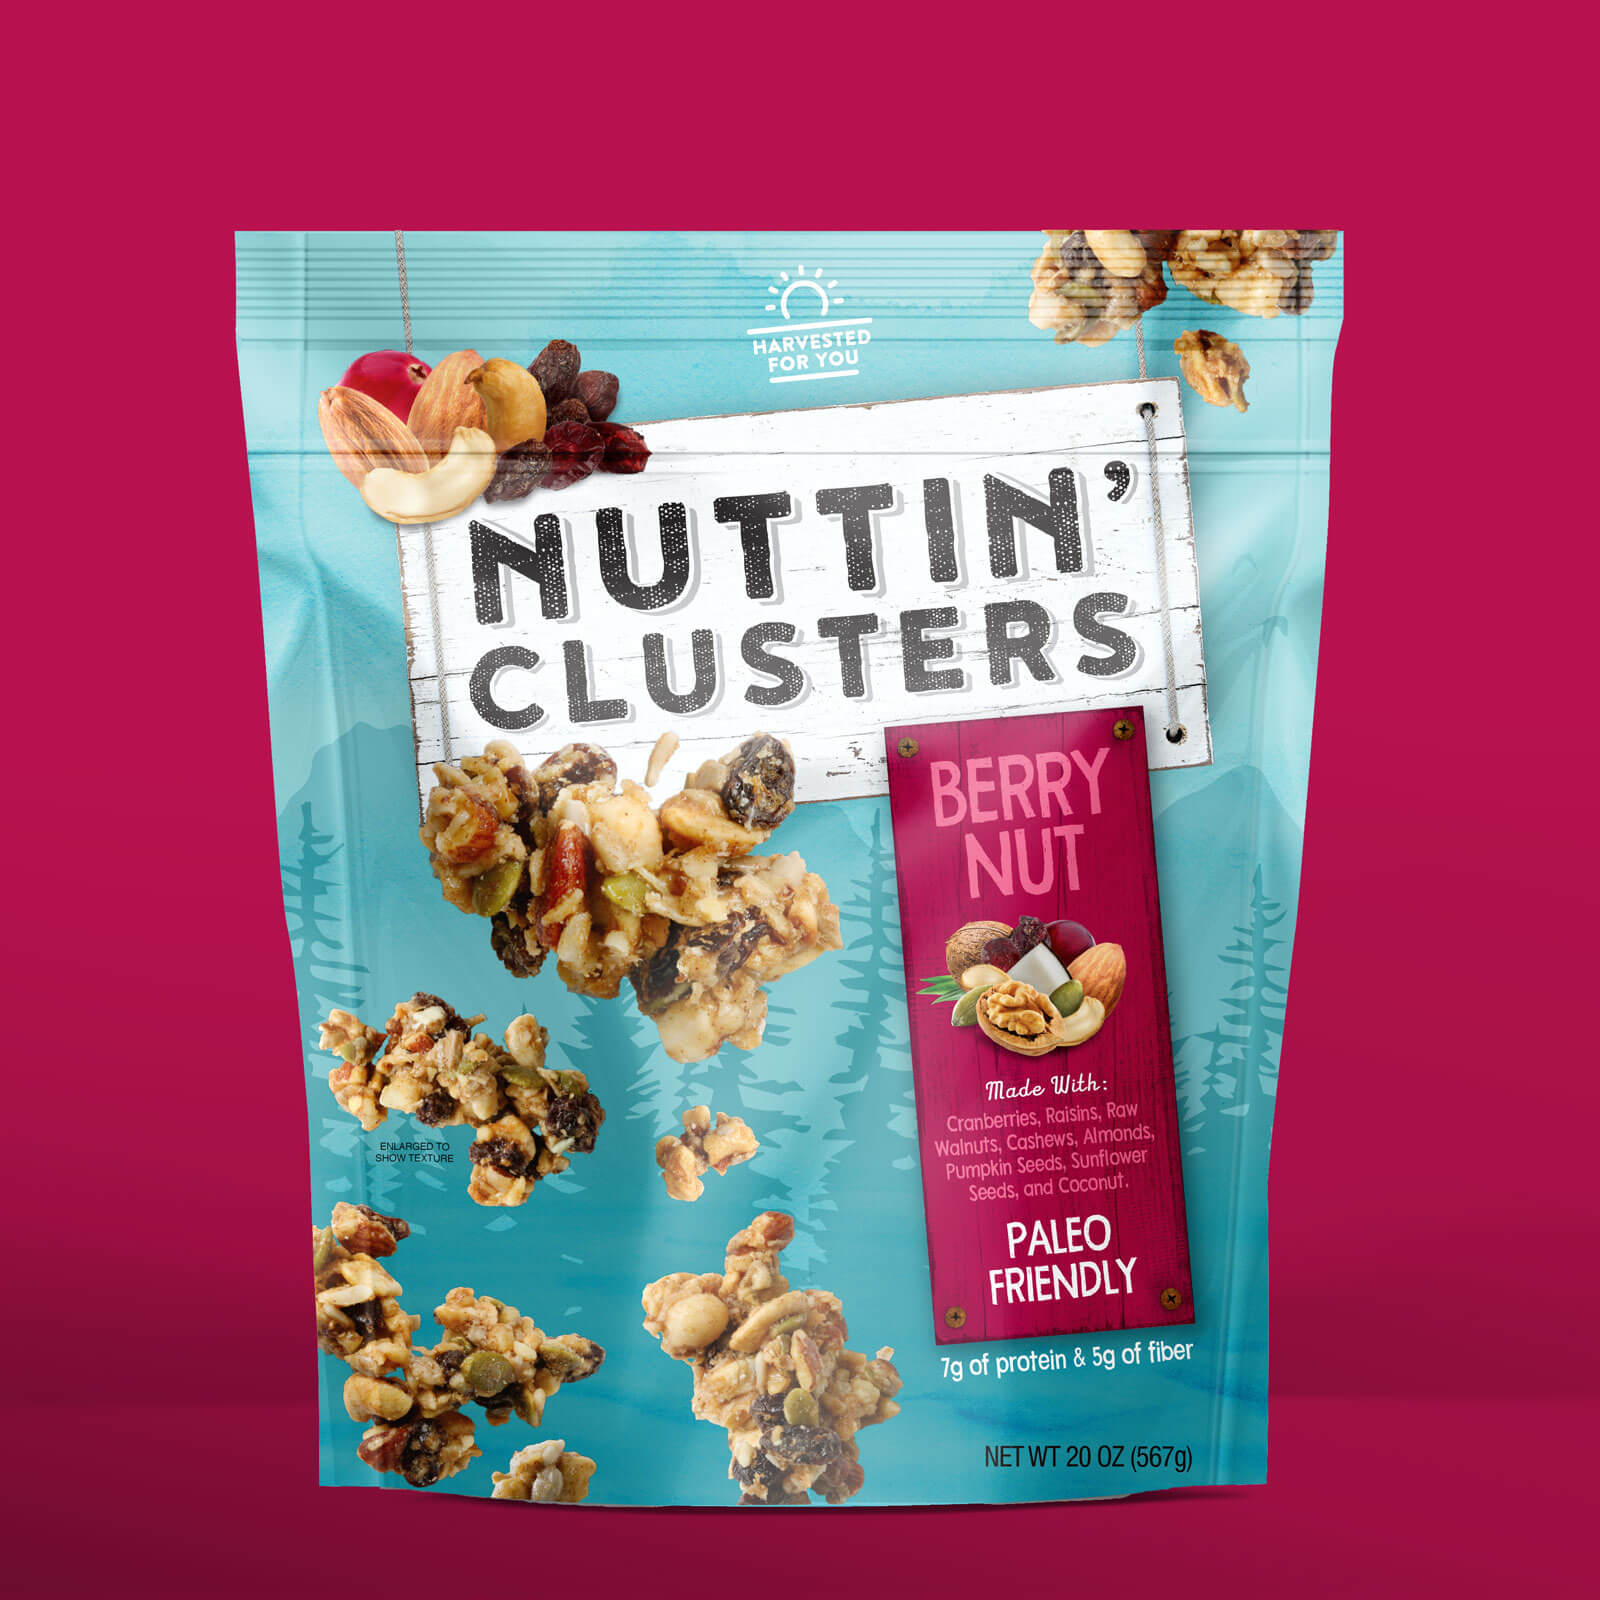 Nuttin Clusters final packaging design